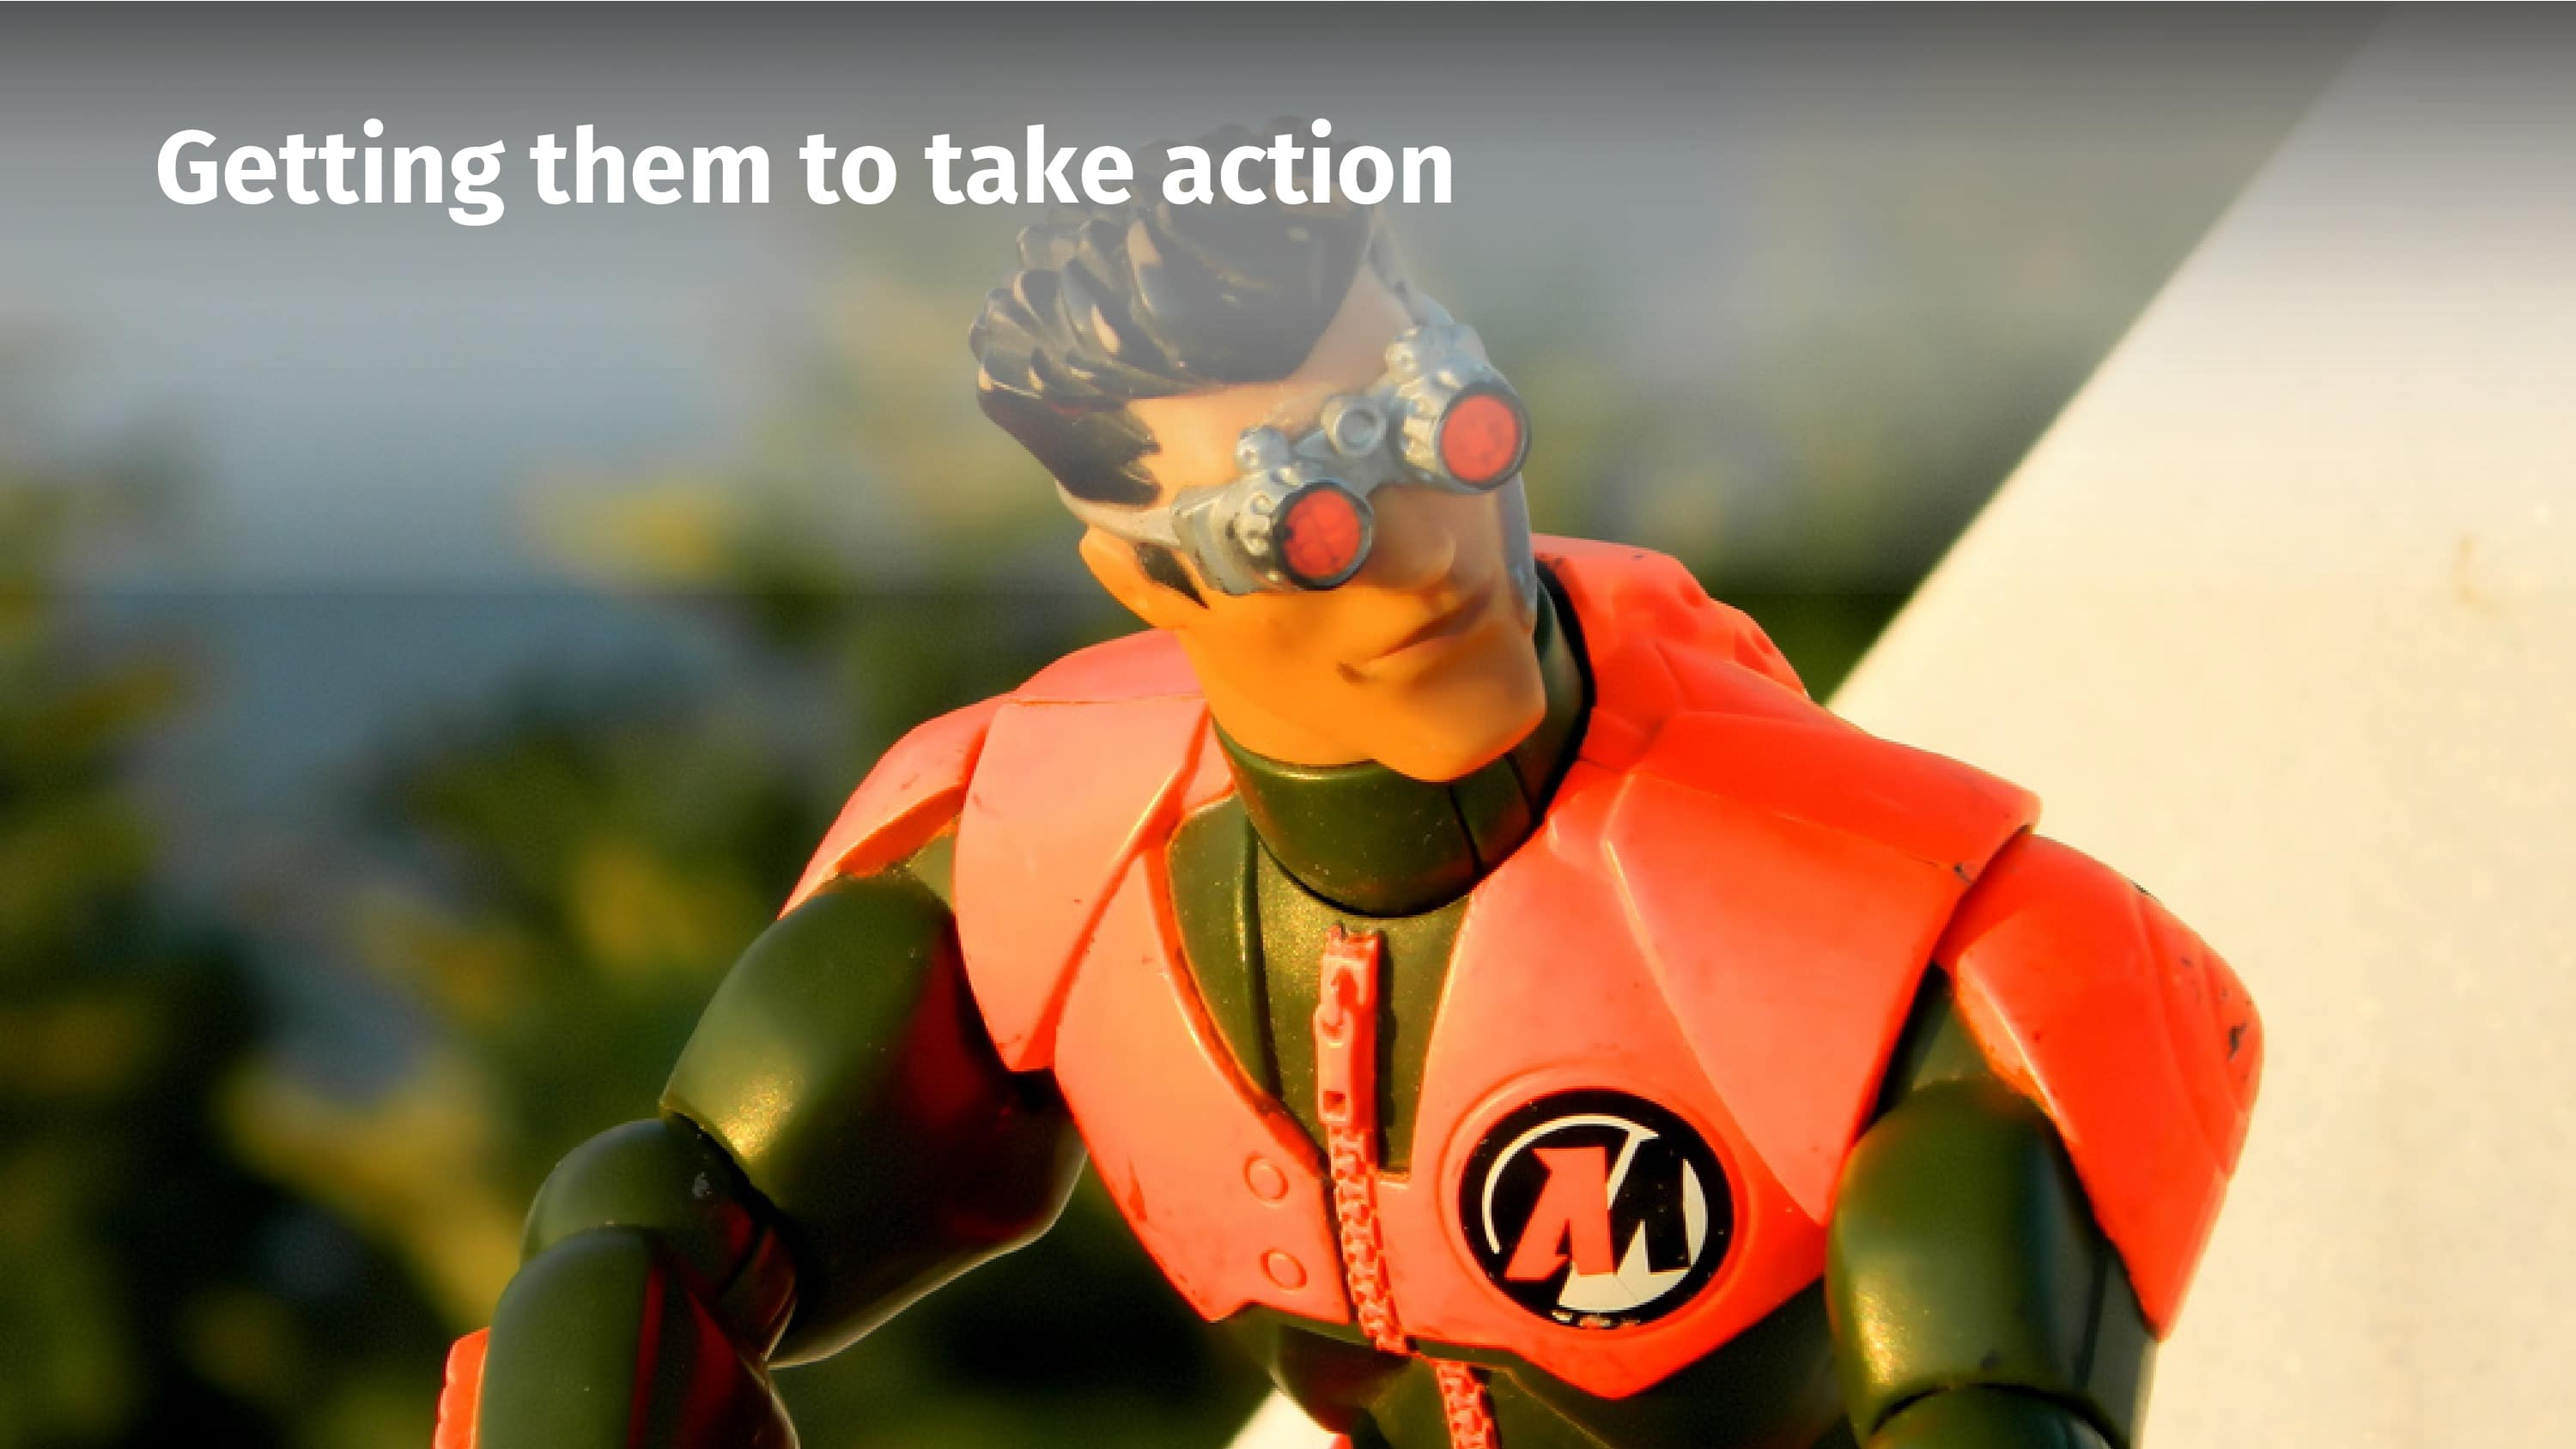 Getting them to take action.